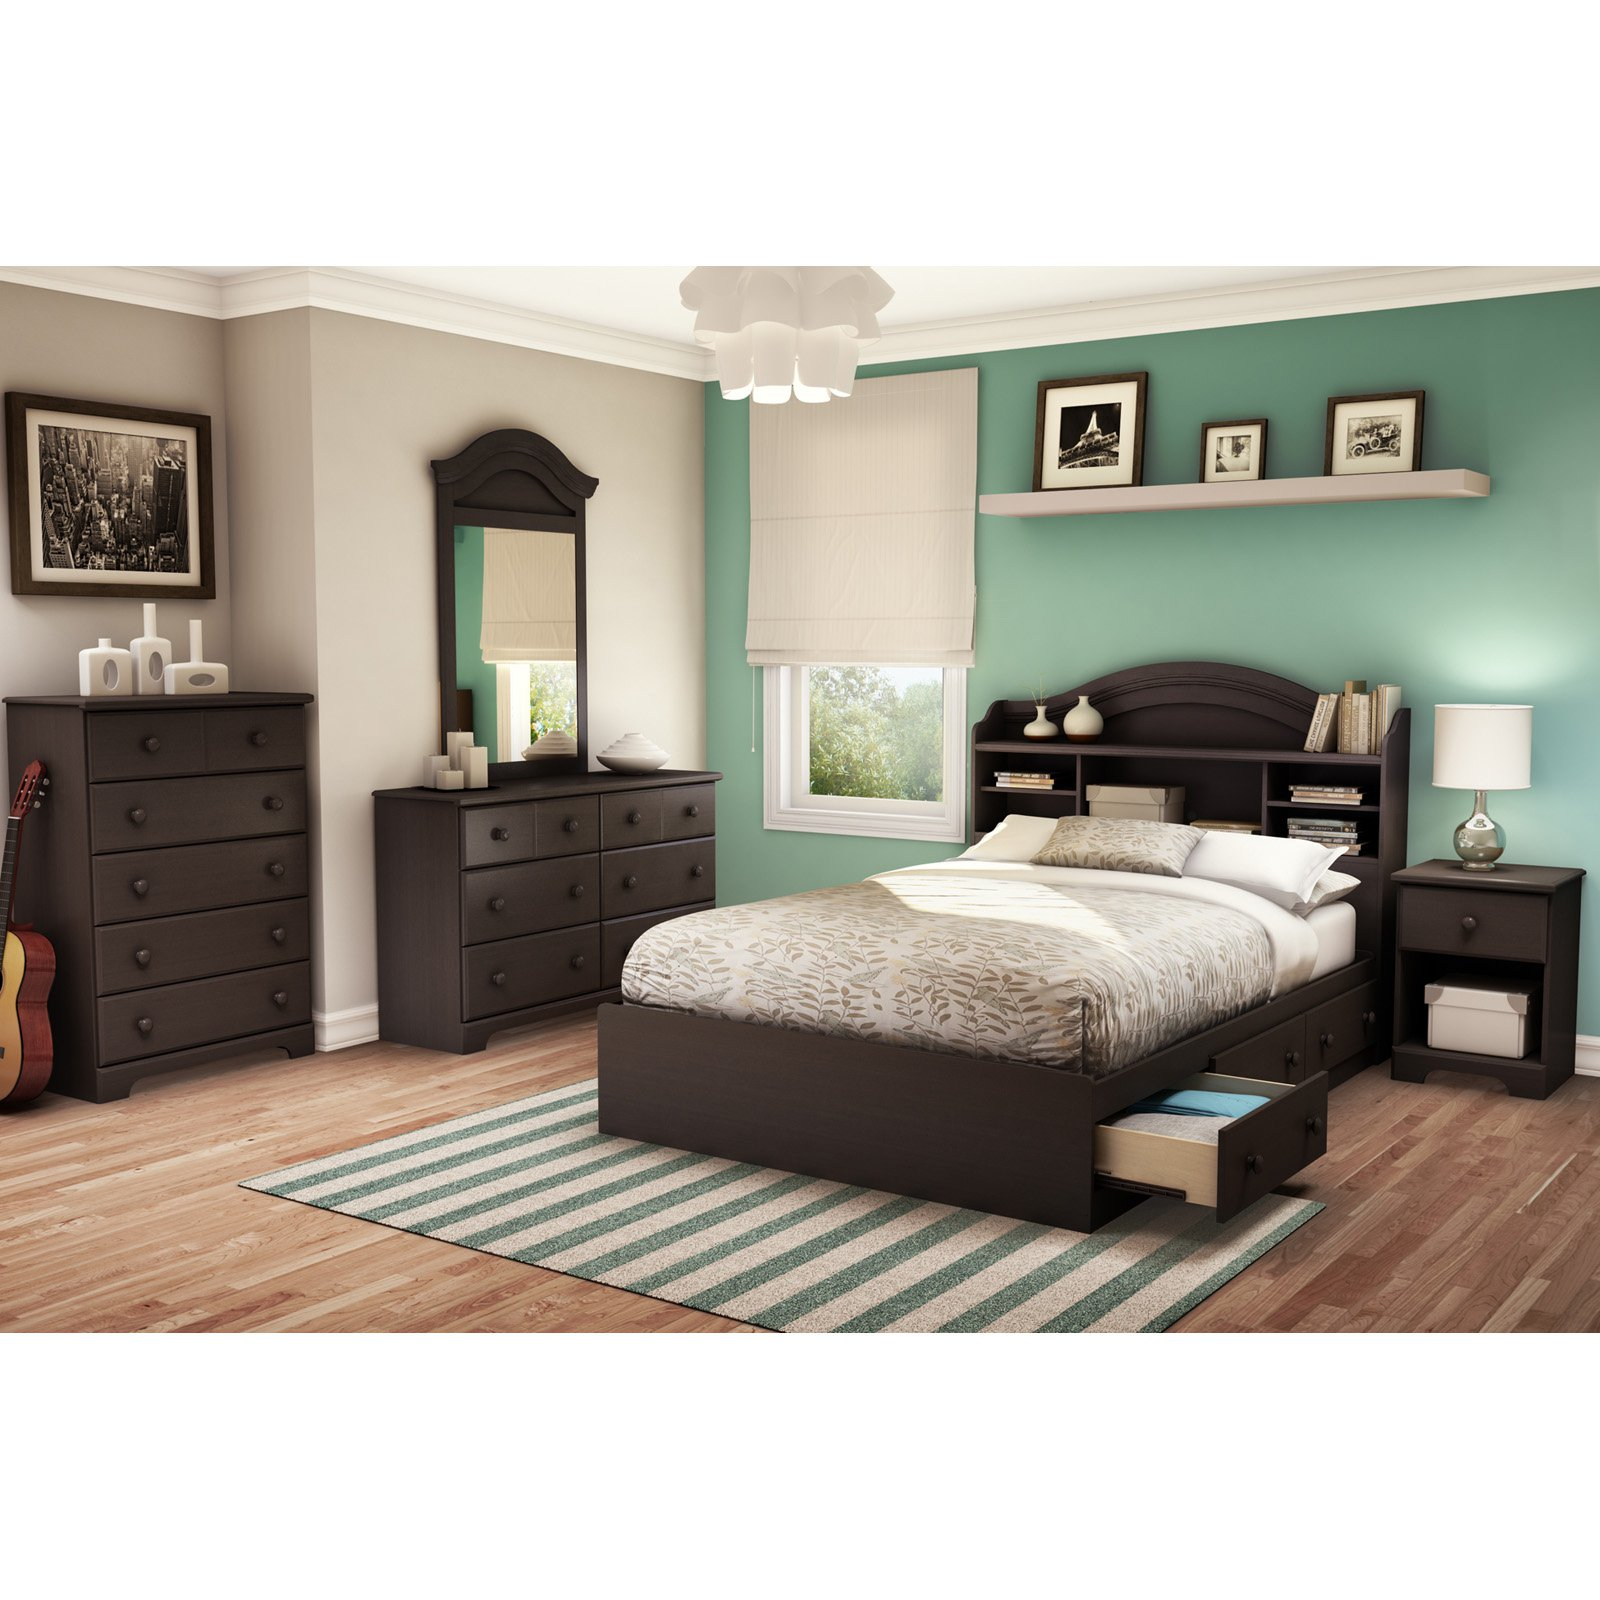 New Bedroom Set South Shore Summer Breeze 4 Piece Bedroom Set Twin Multiple Finishes Walmart